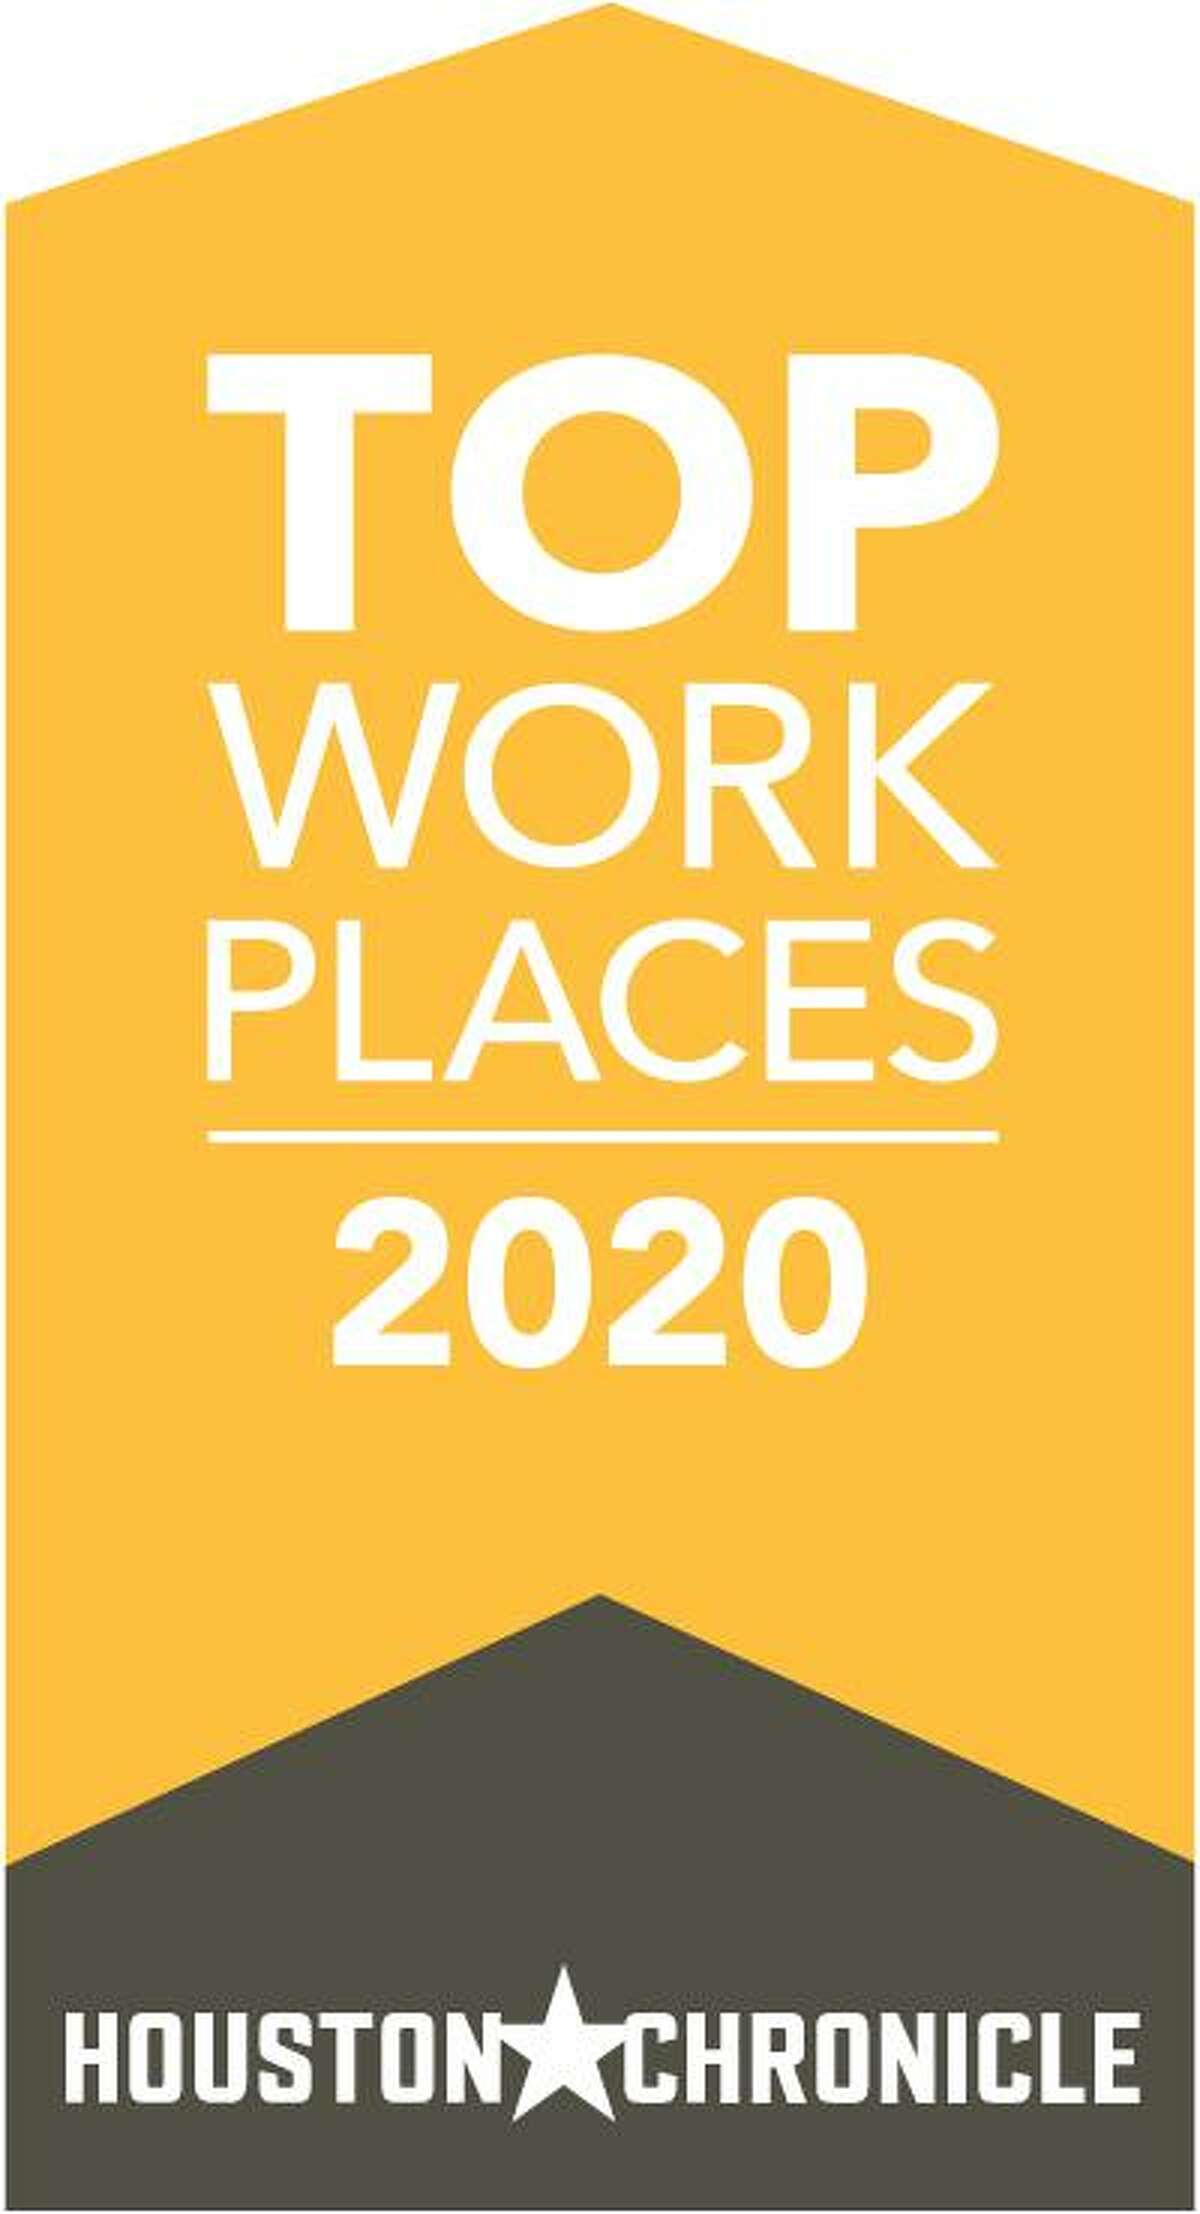 Houston Chronicle Top Workplaces will be announced in November.